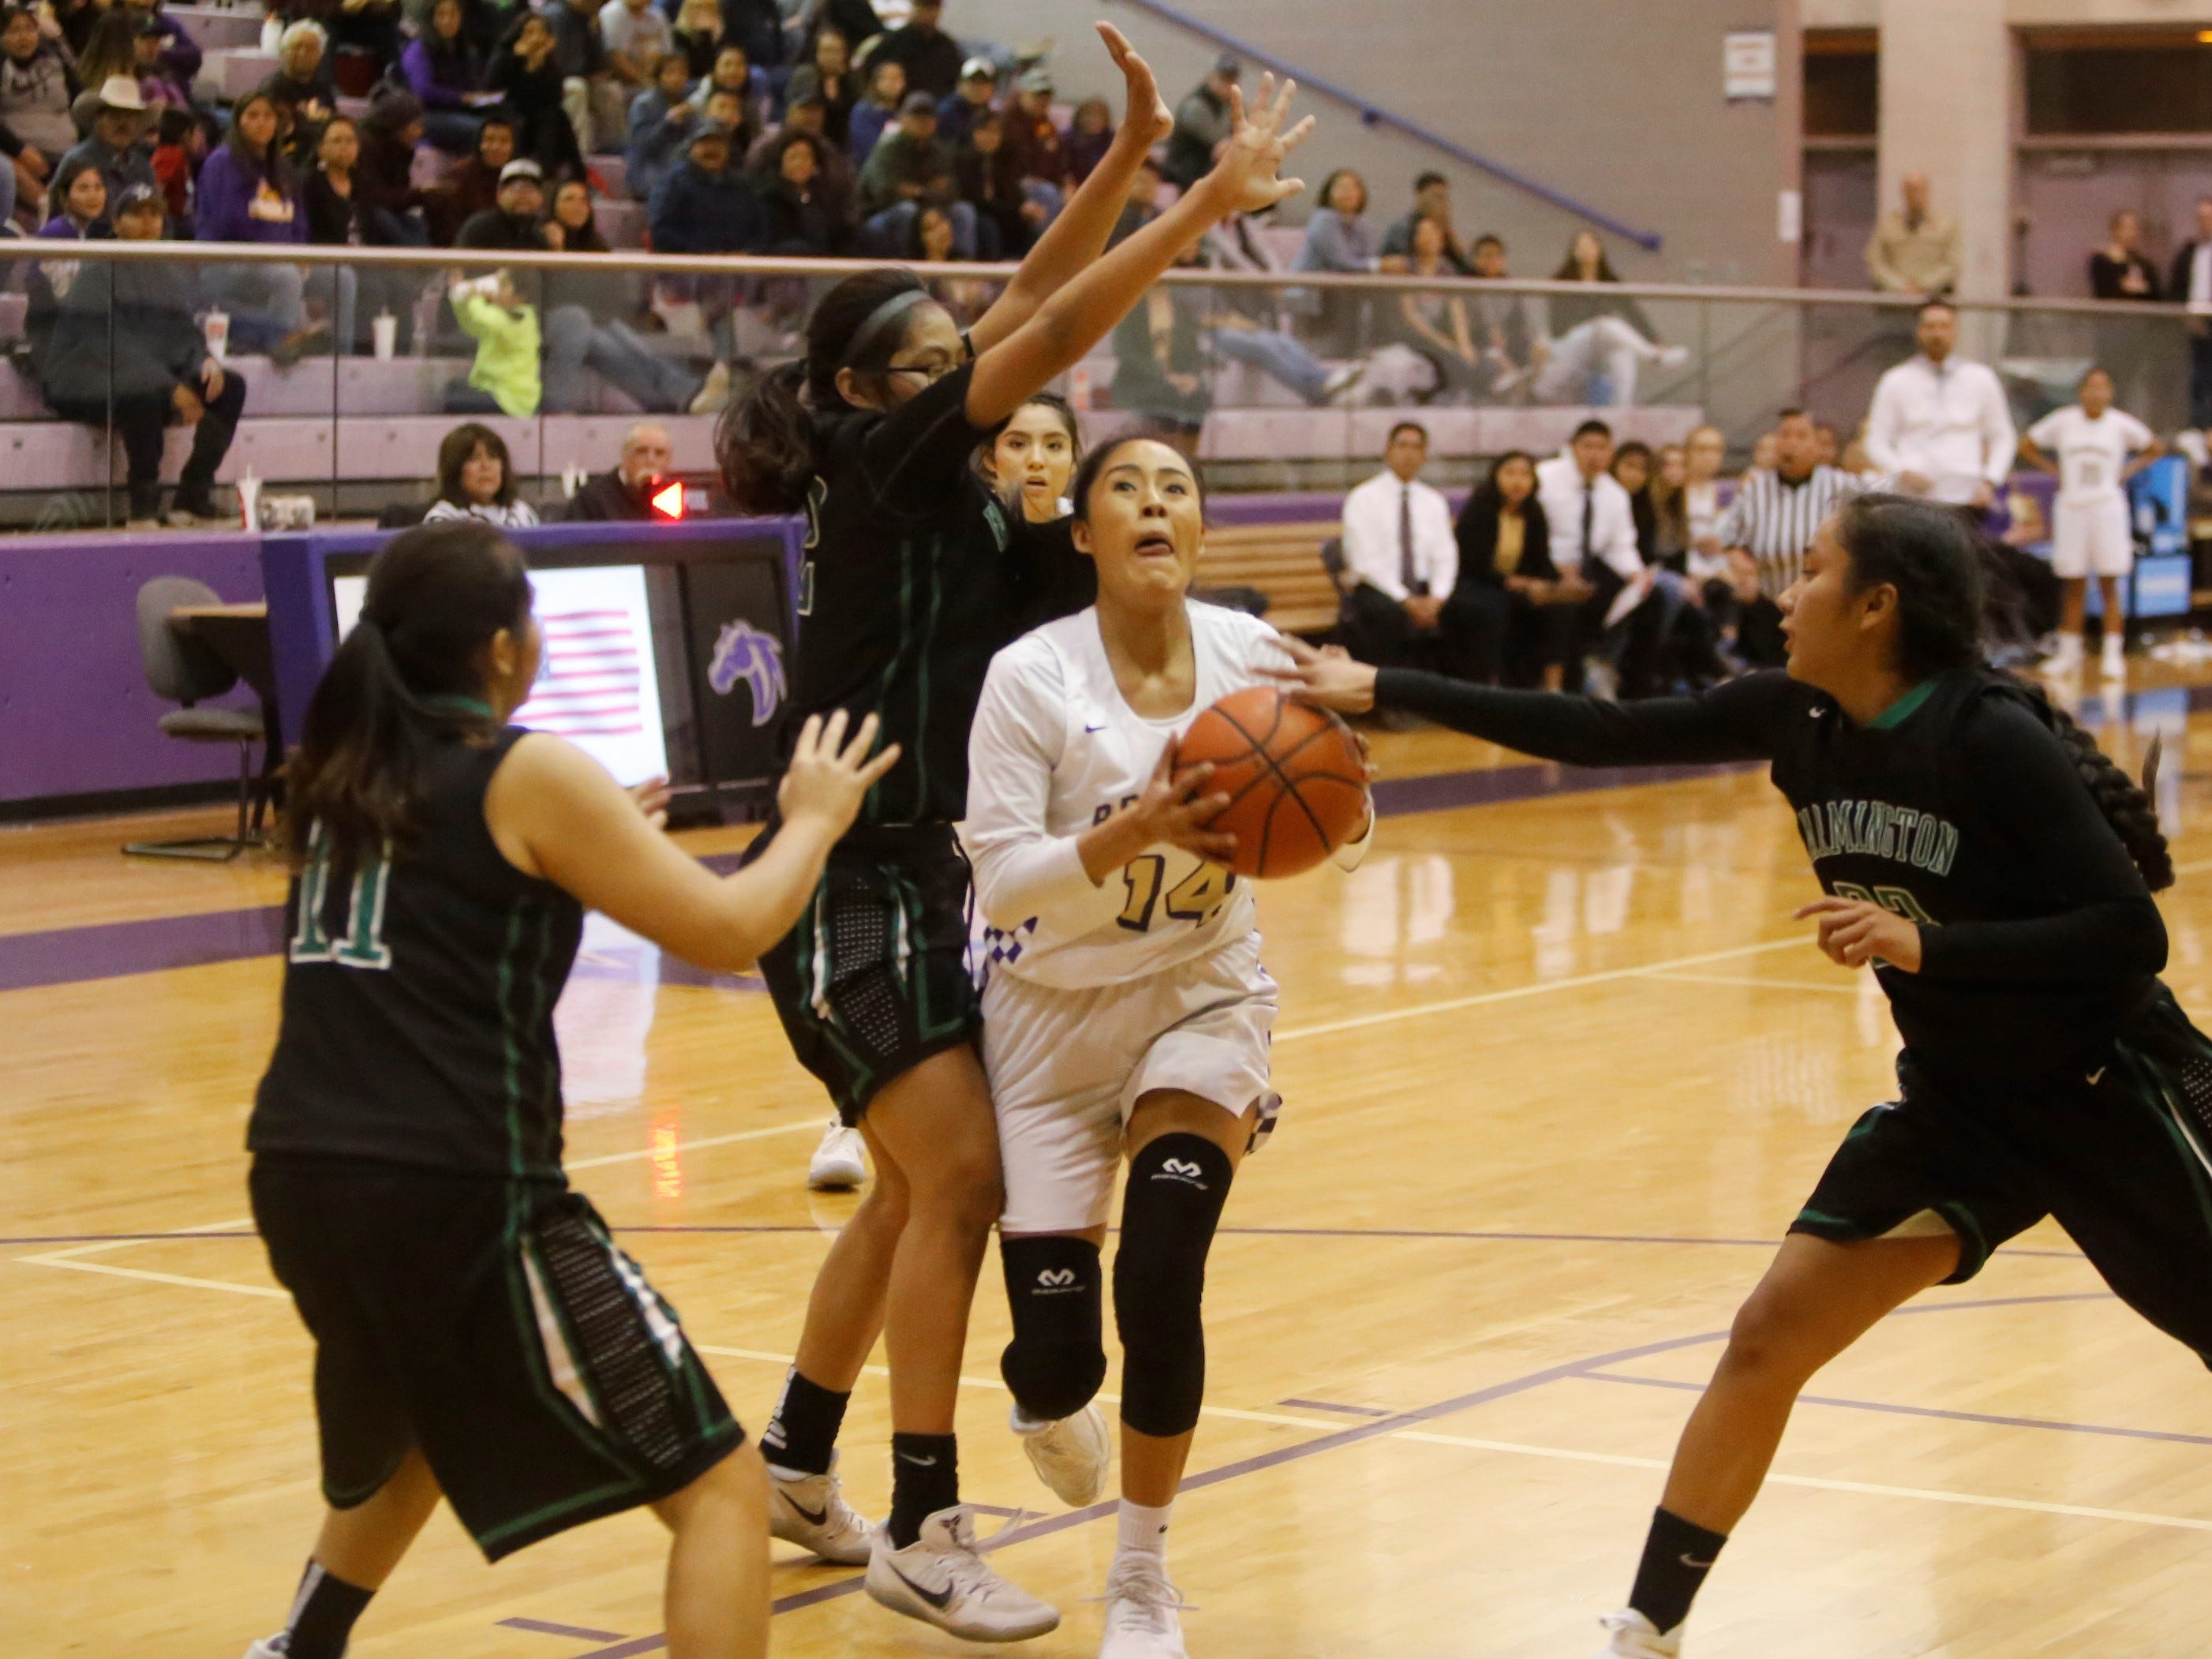 Kirtland Central's Shayonna Begay attacks the basket against Farmington's Philinda Nez (11), Germaine Steven (12) and Kiiyani Anitielu (23) during Tuesday's game at Bronco Arena in Kirtland.